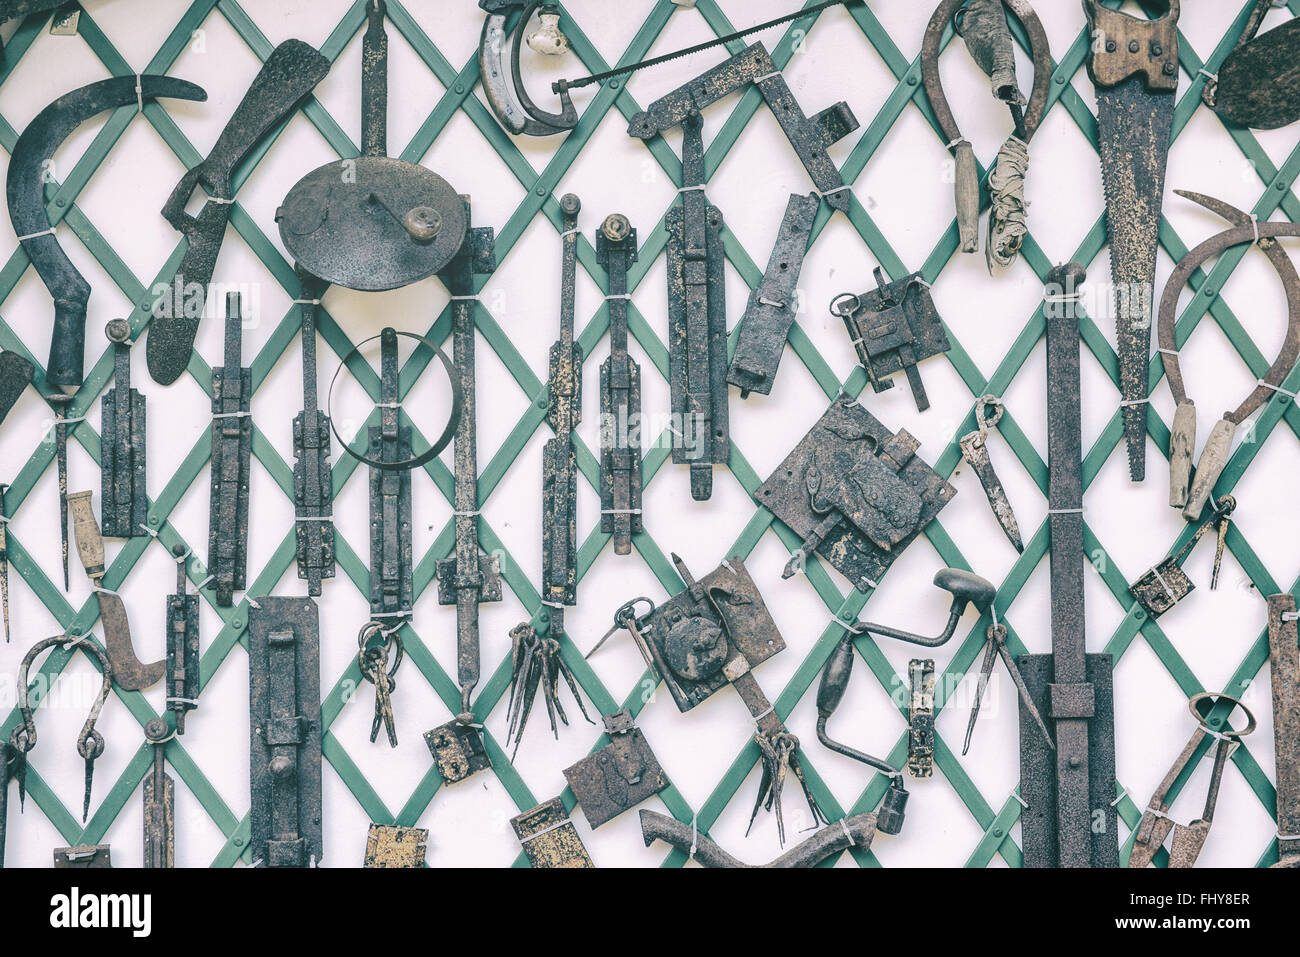 old garden tools, locks, chains, fasteners, saws Stock Photo